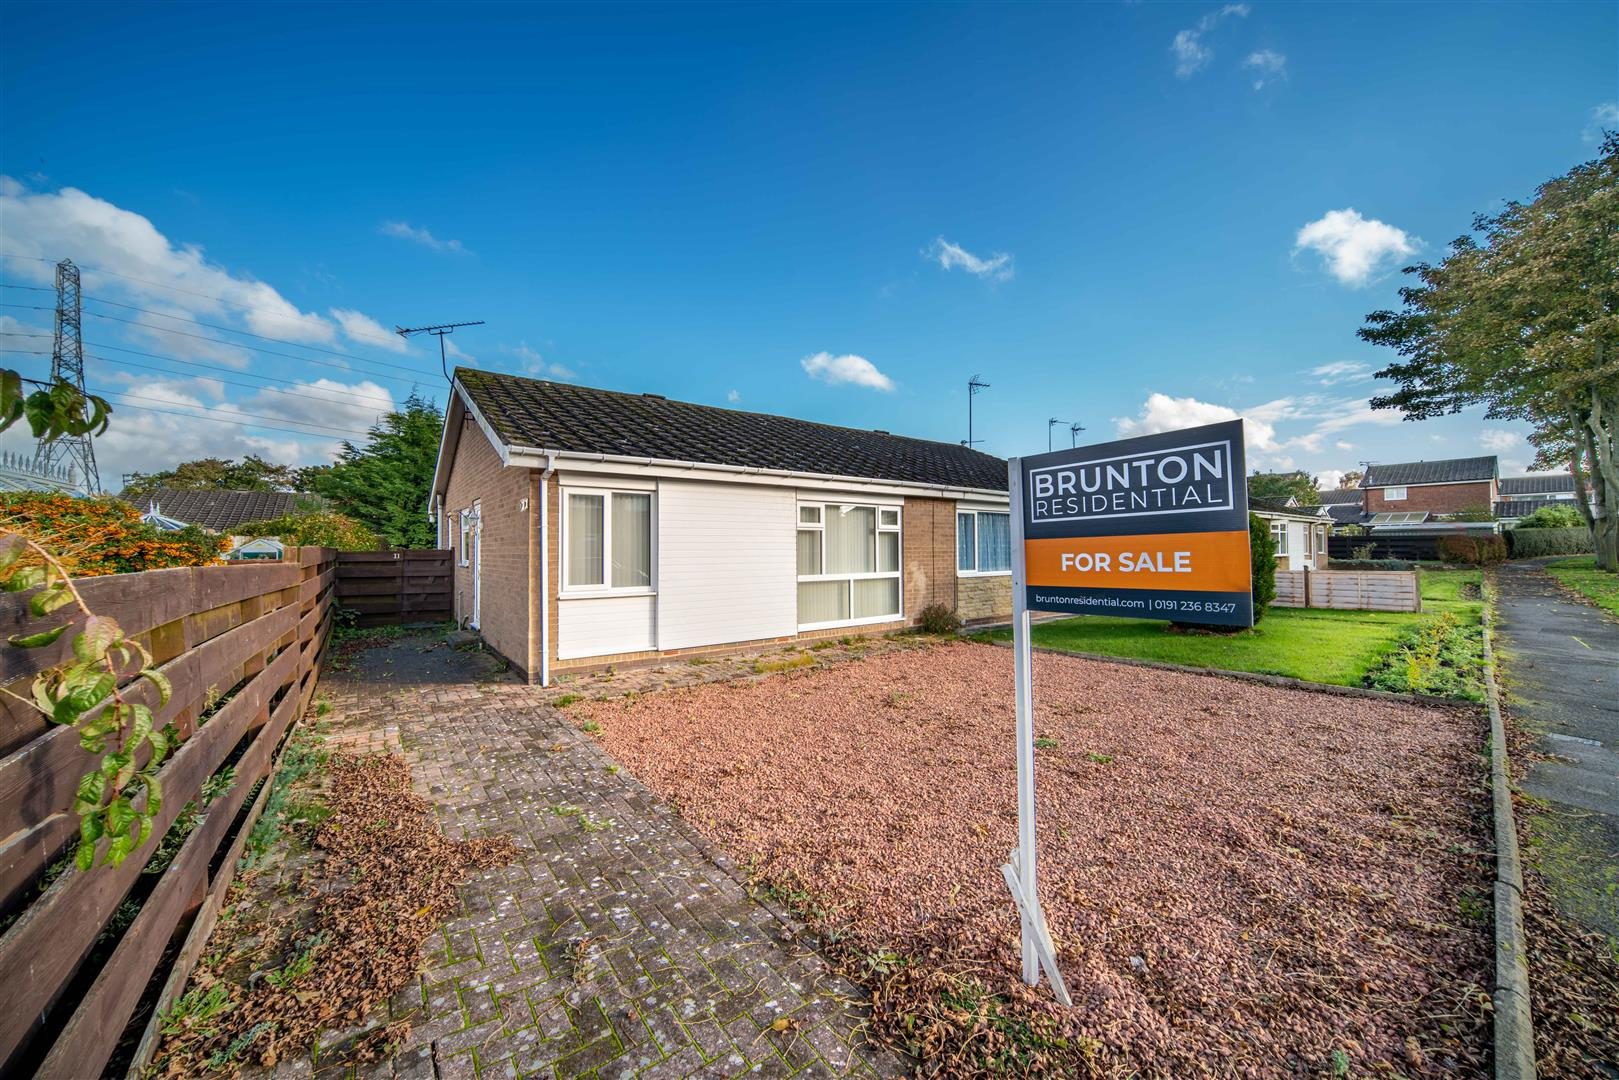 2 bed semi-detached bungalow for sale in Wideopen, NE13 7HA  - Property Image 1